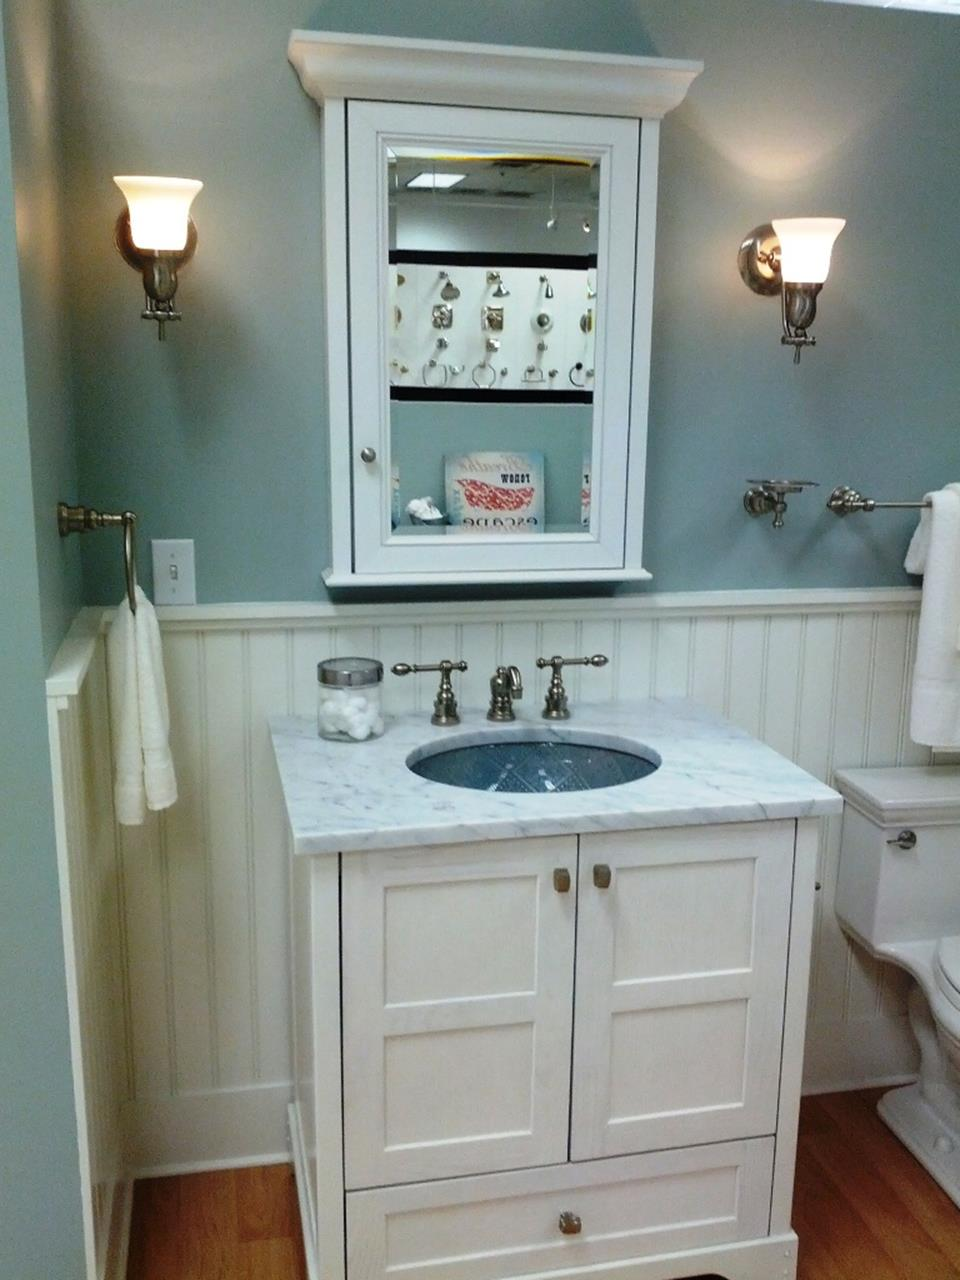 42 Perfect Small Bathroom Decorating Ideas 22